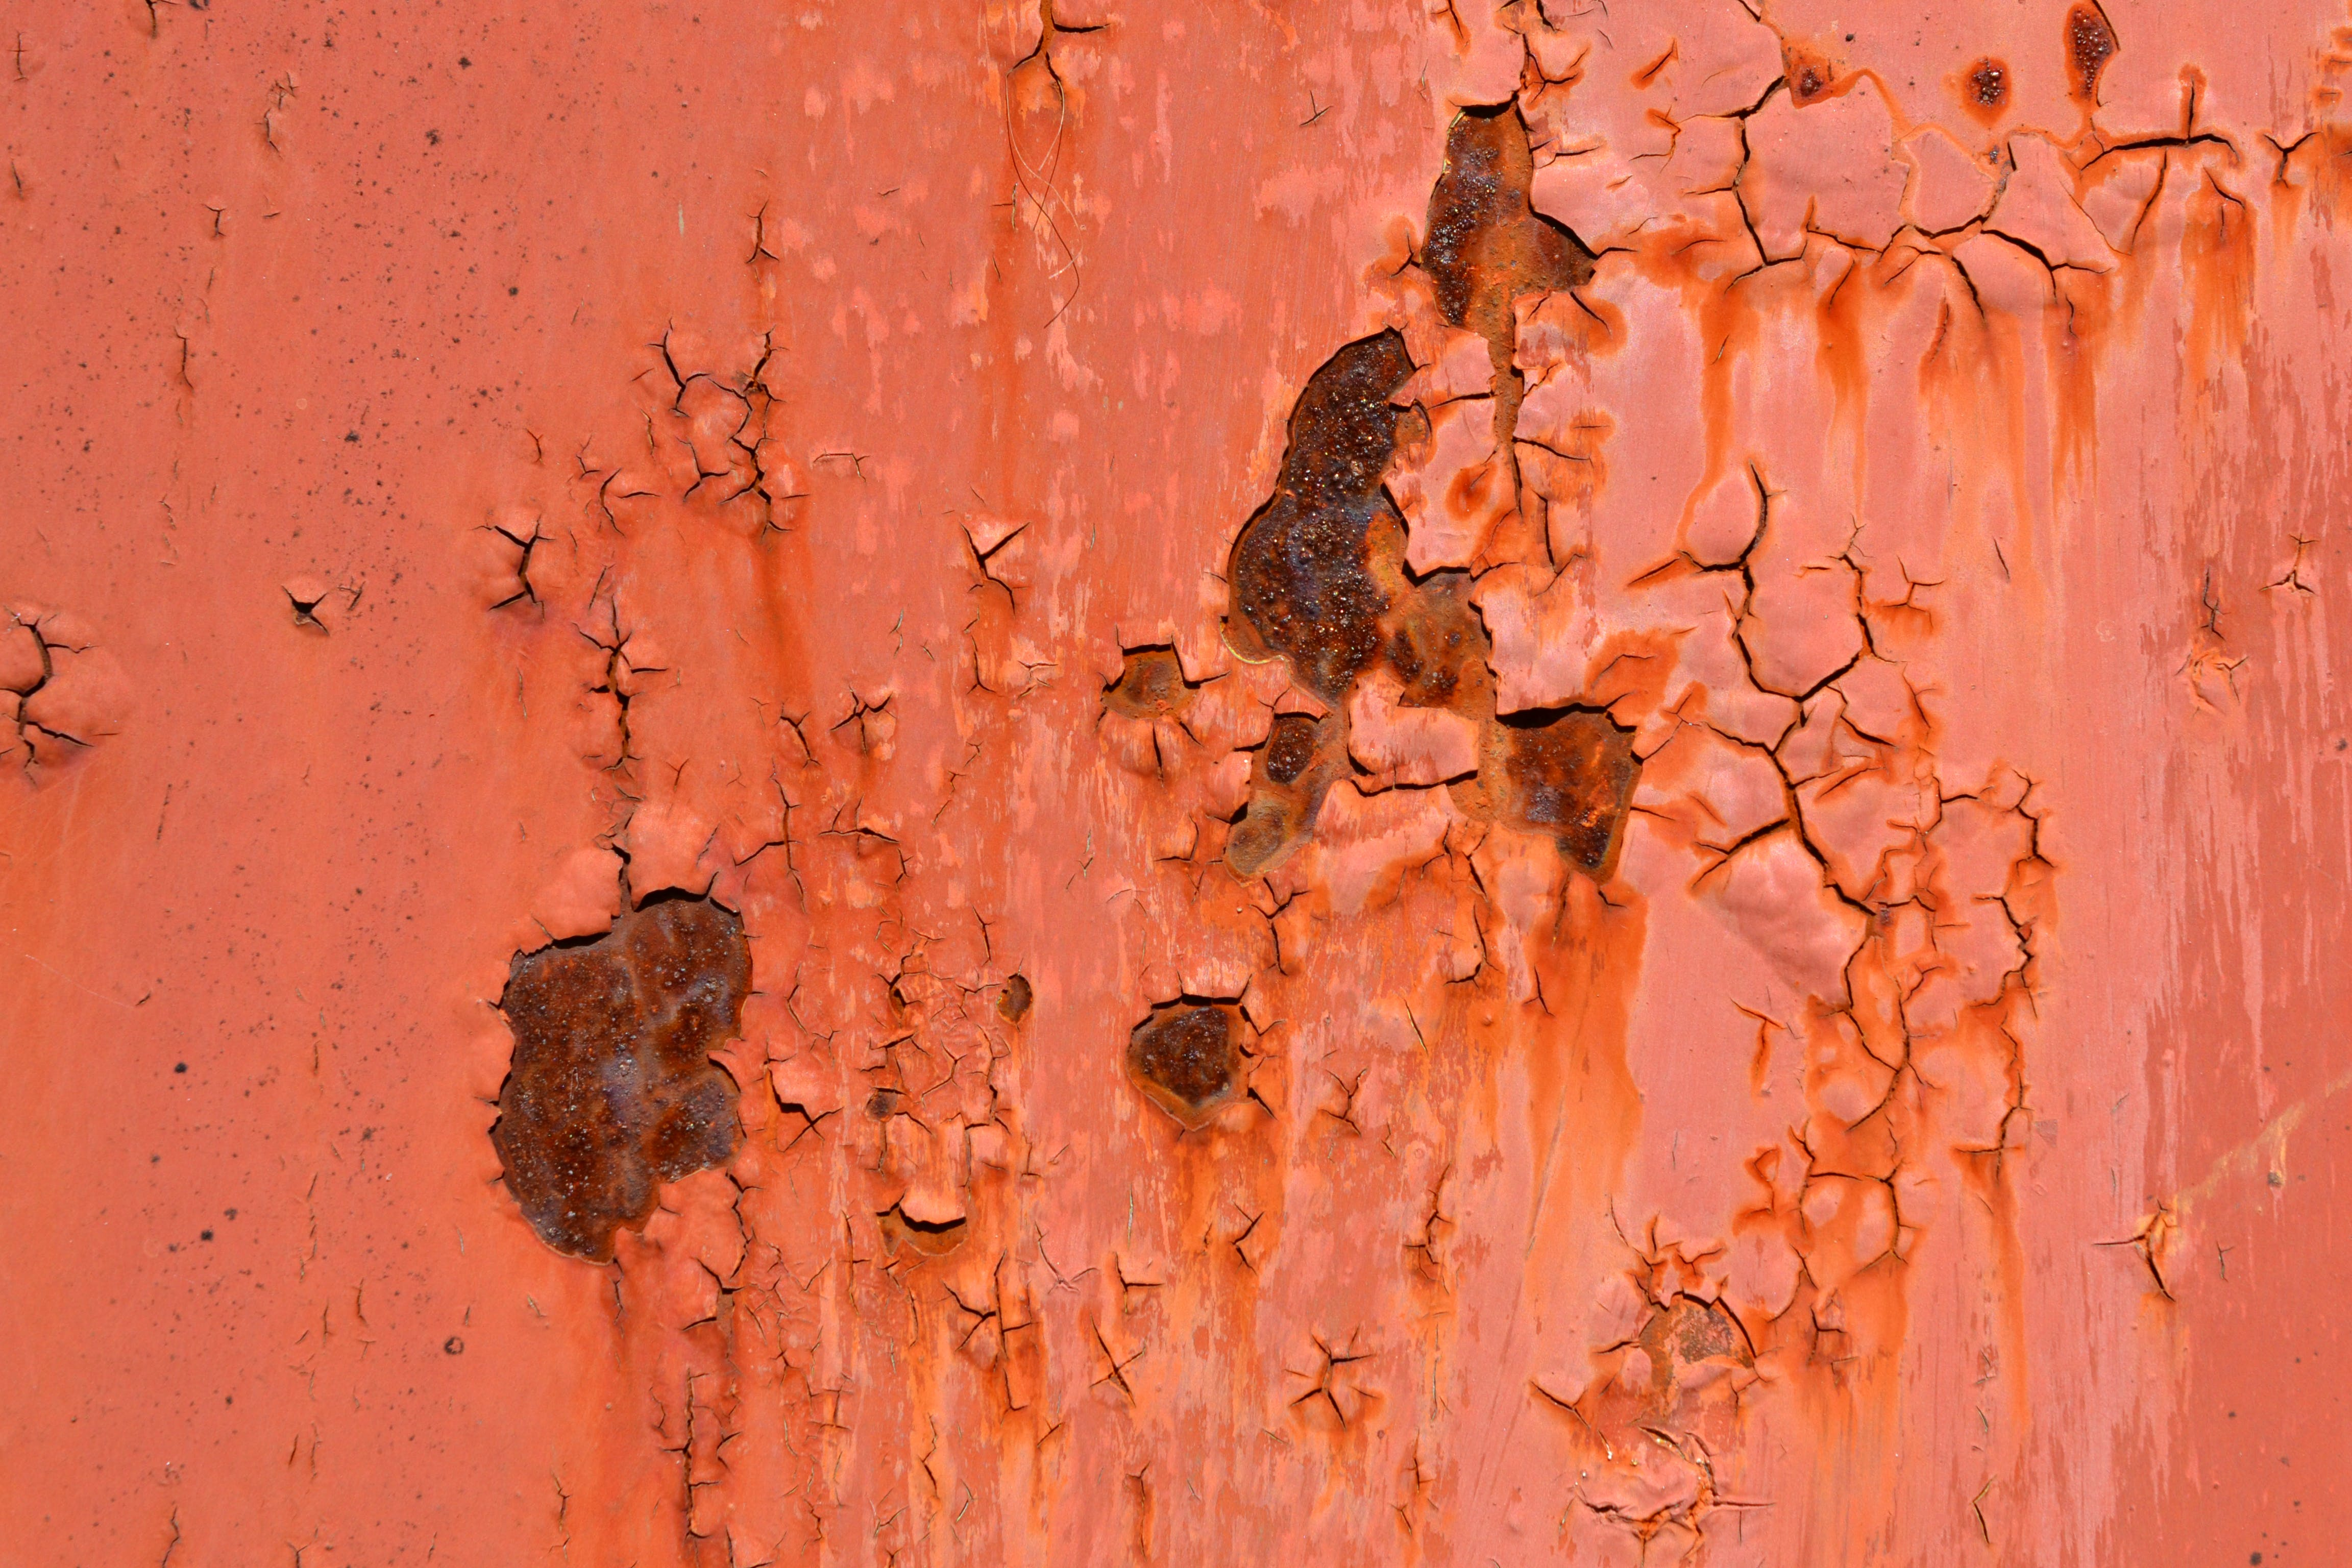 Free stock photo of texture, rust, paint, old